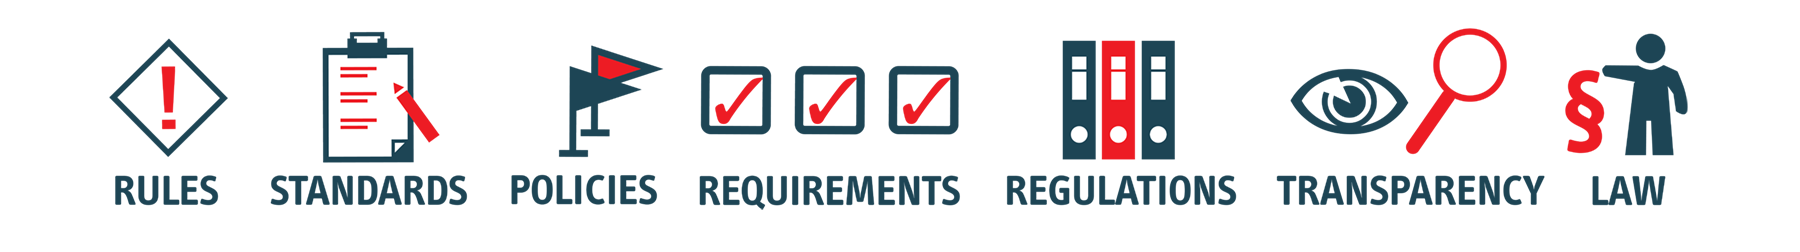 Rules, Standards, Policies, Requirements, Regulations, Transparency, and Law